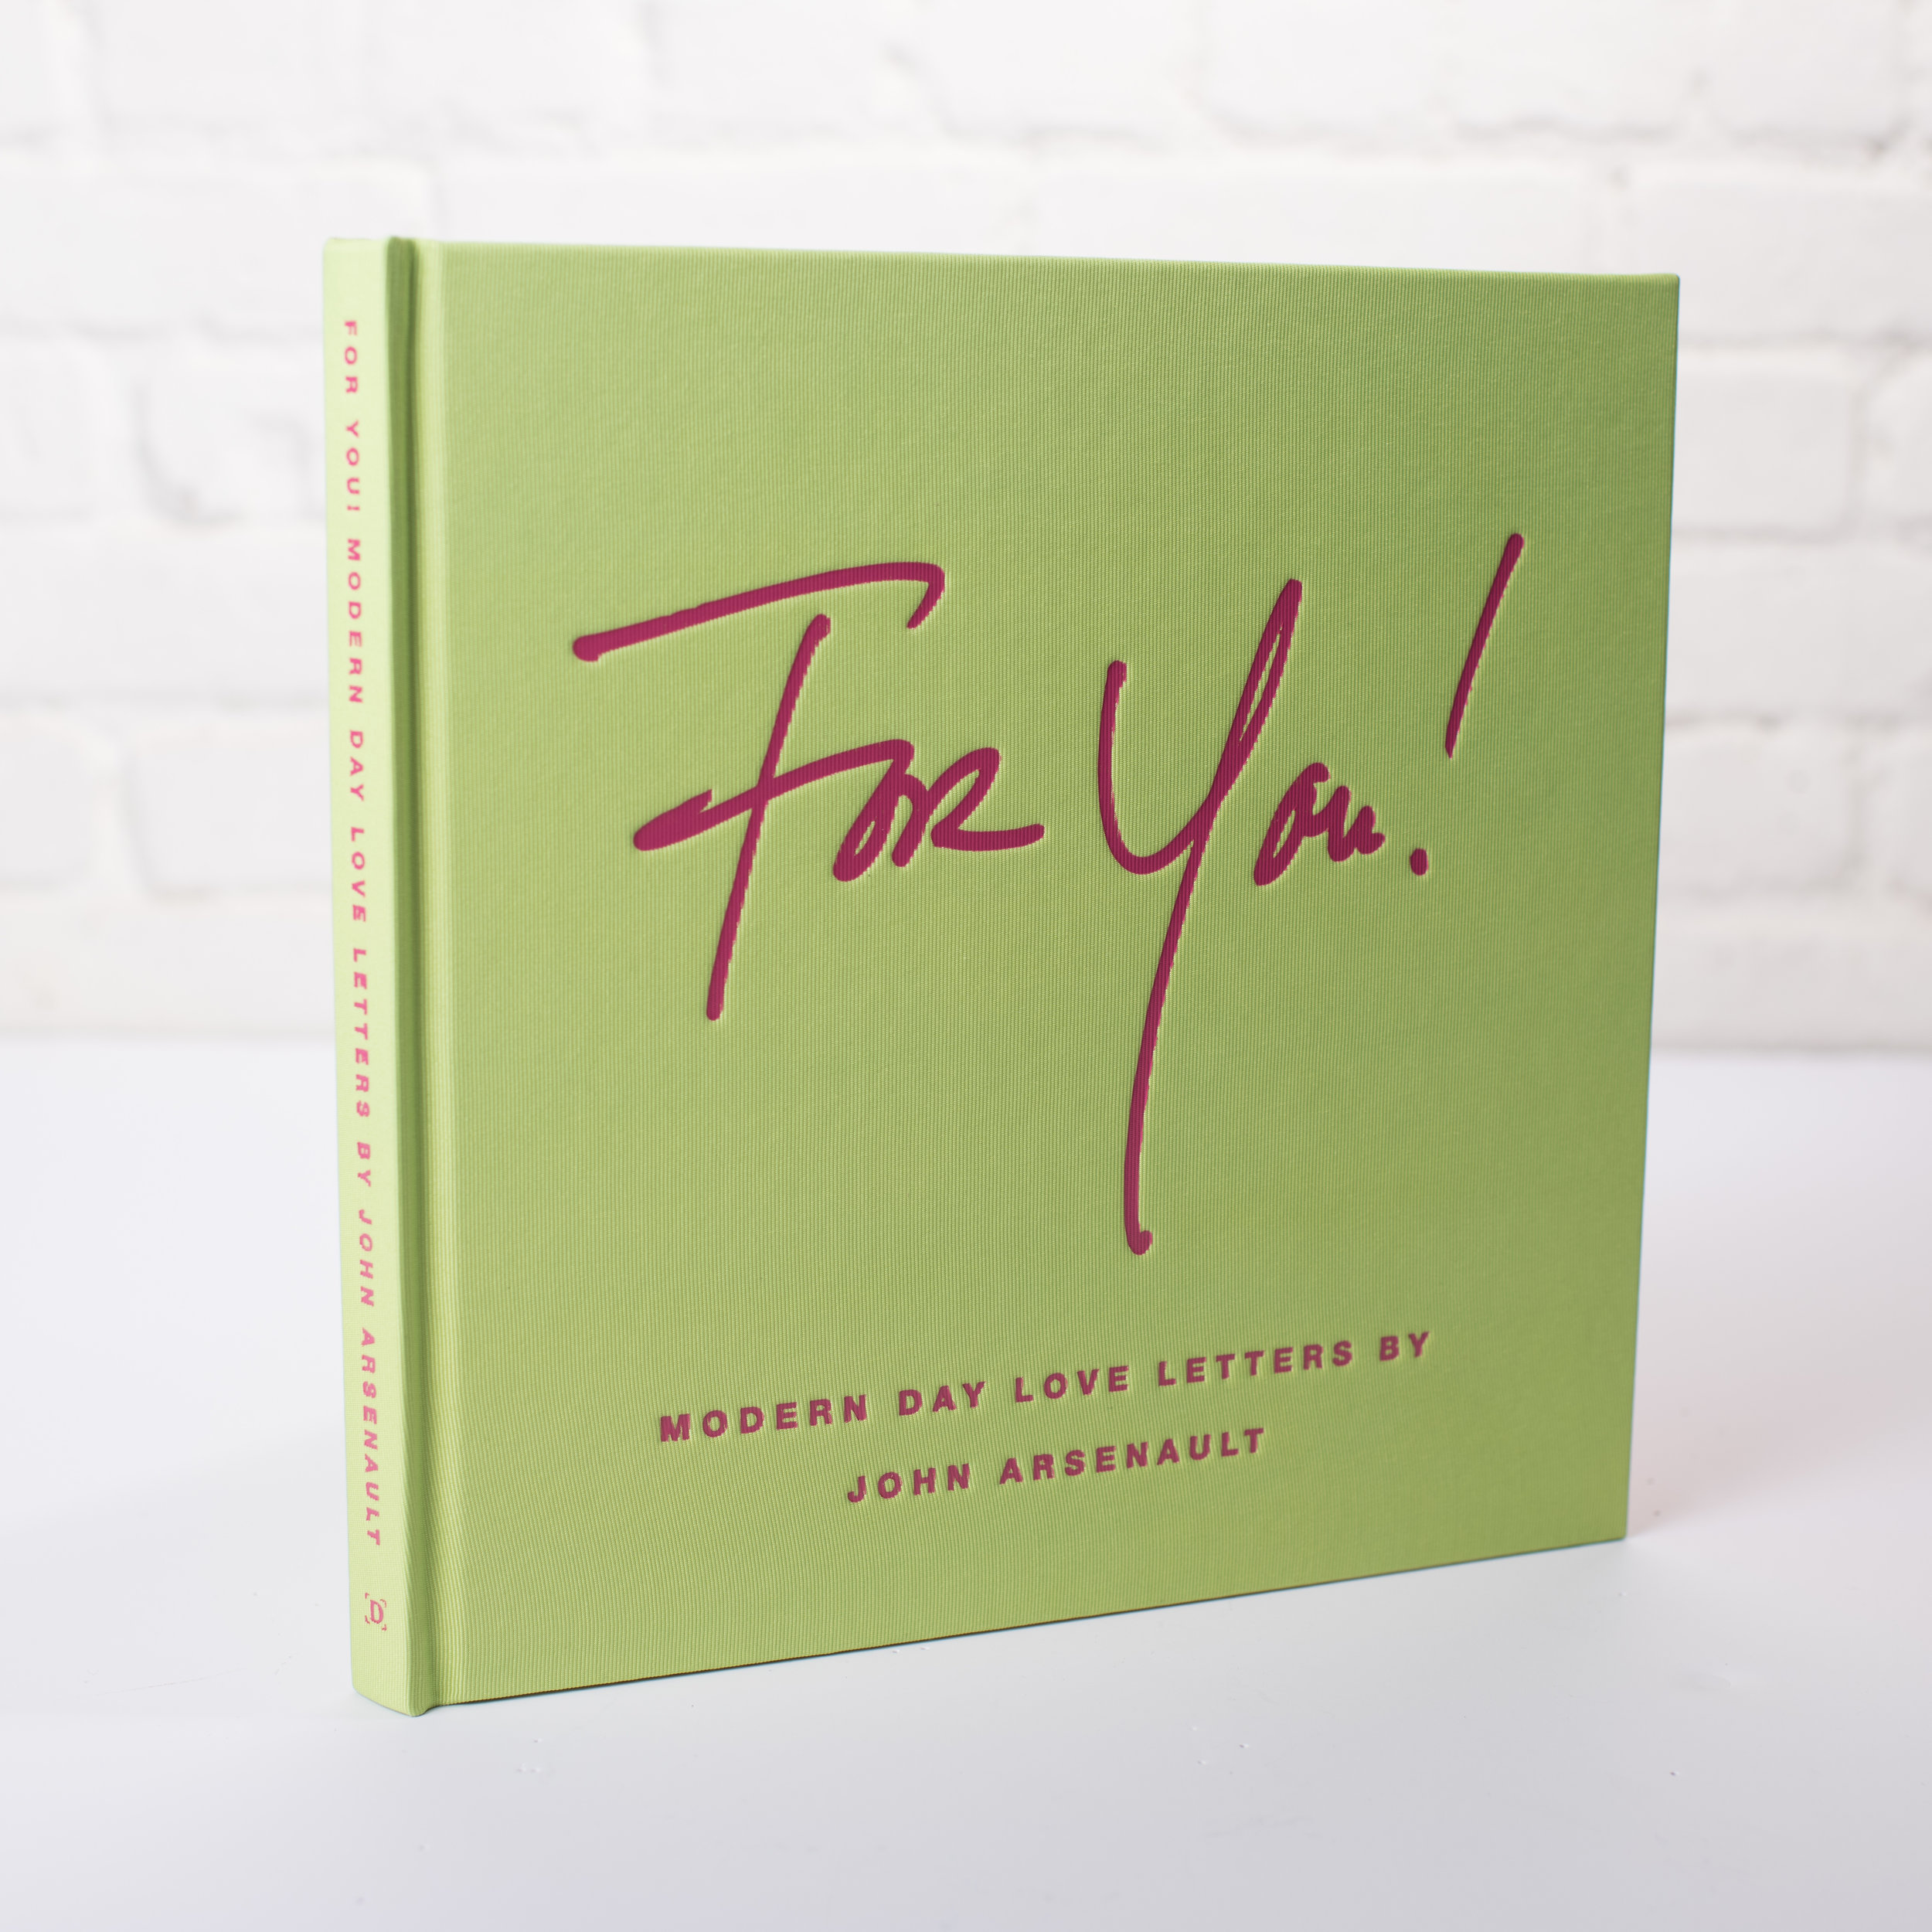 John Arsenault's FOR YOU! Book and COOL HUNTING Omakase Exclusive Print